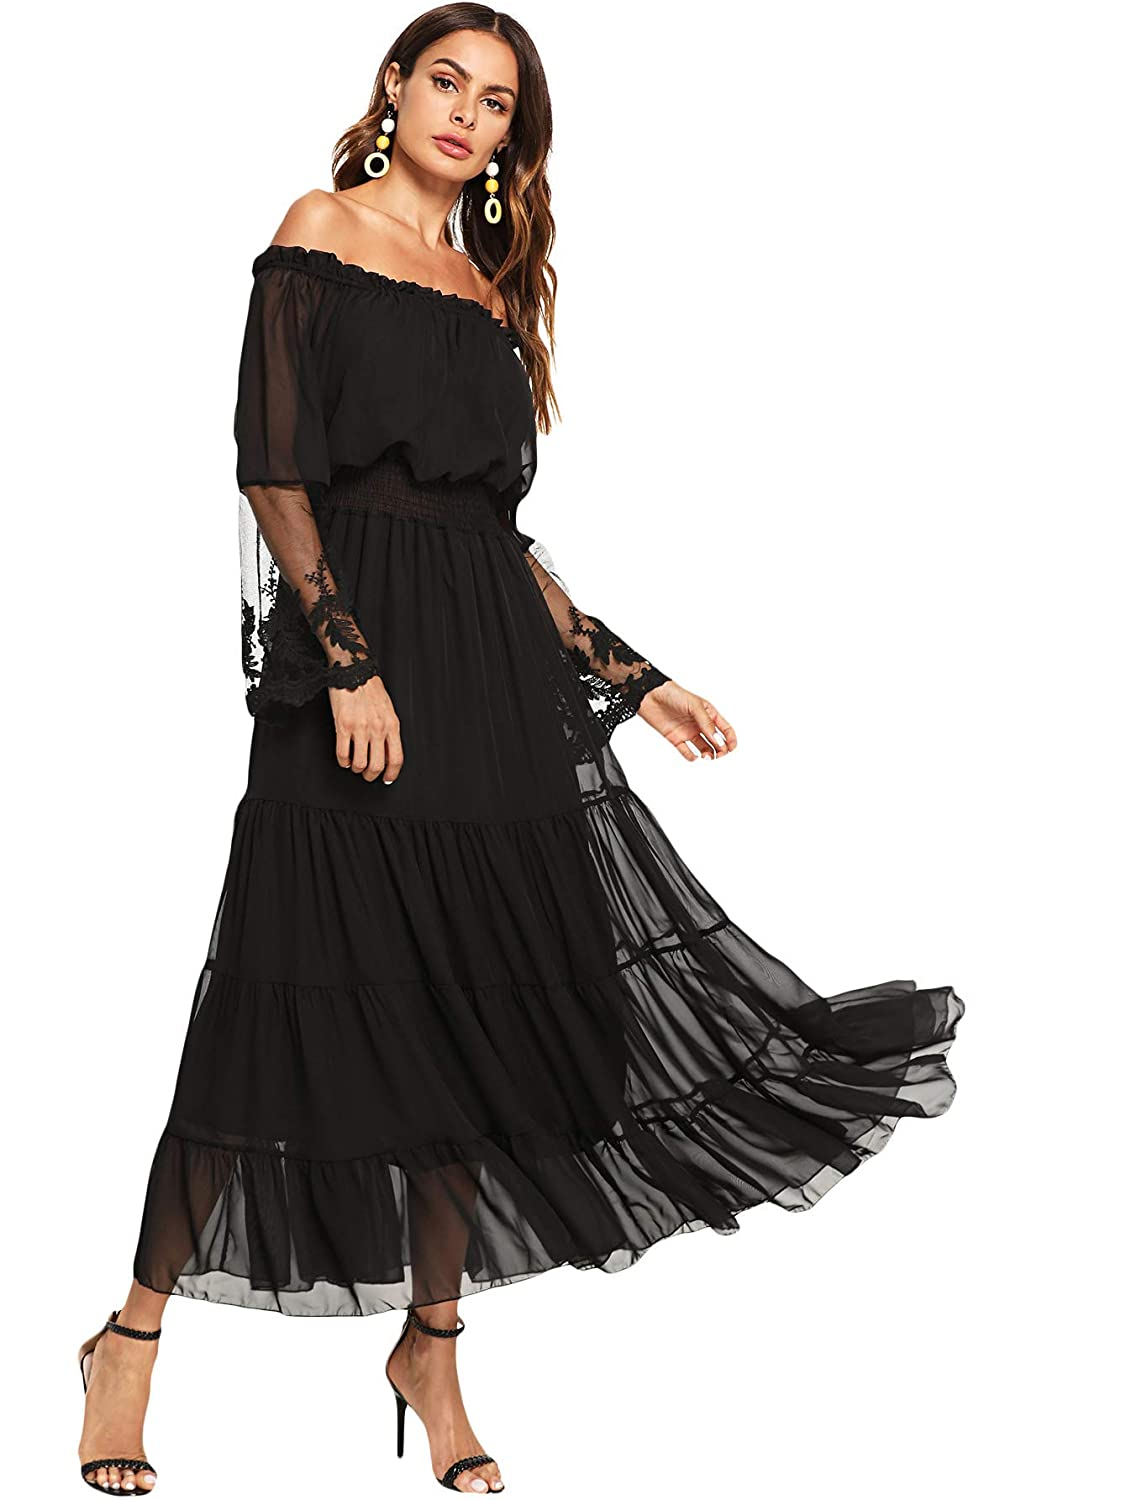 55cd13a2102d29 Milumia Women's Off Shoulder Lace Contrast Ruffle Mesh Sleeve Shirred High  Waist Maxi Dress at Amazon Women's Clothing store: